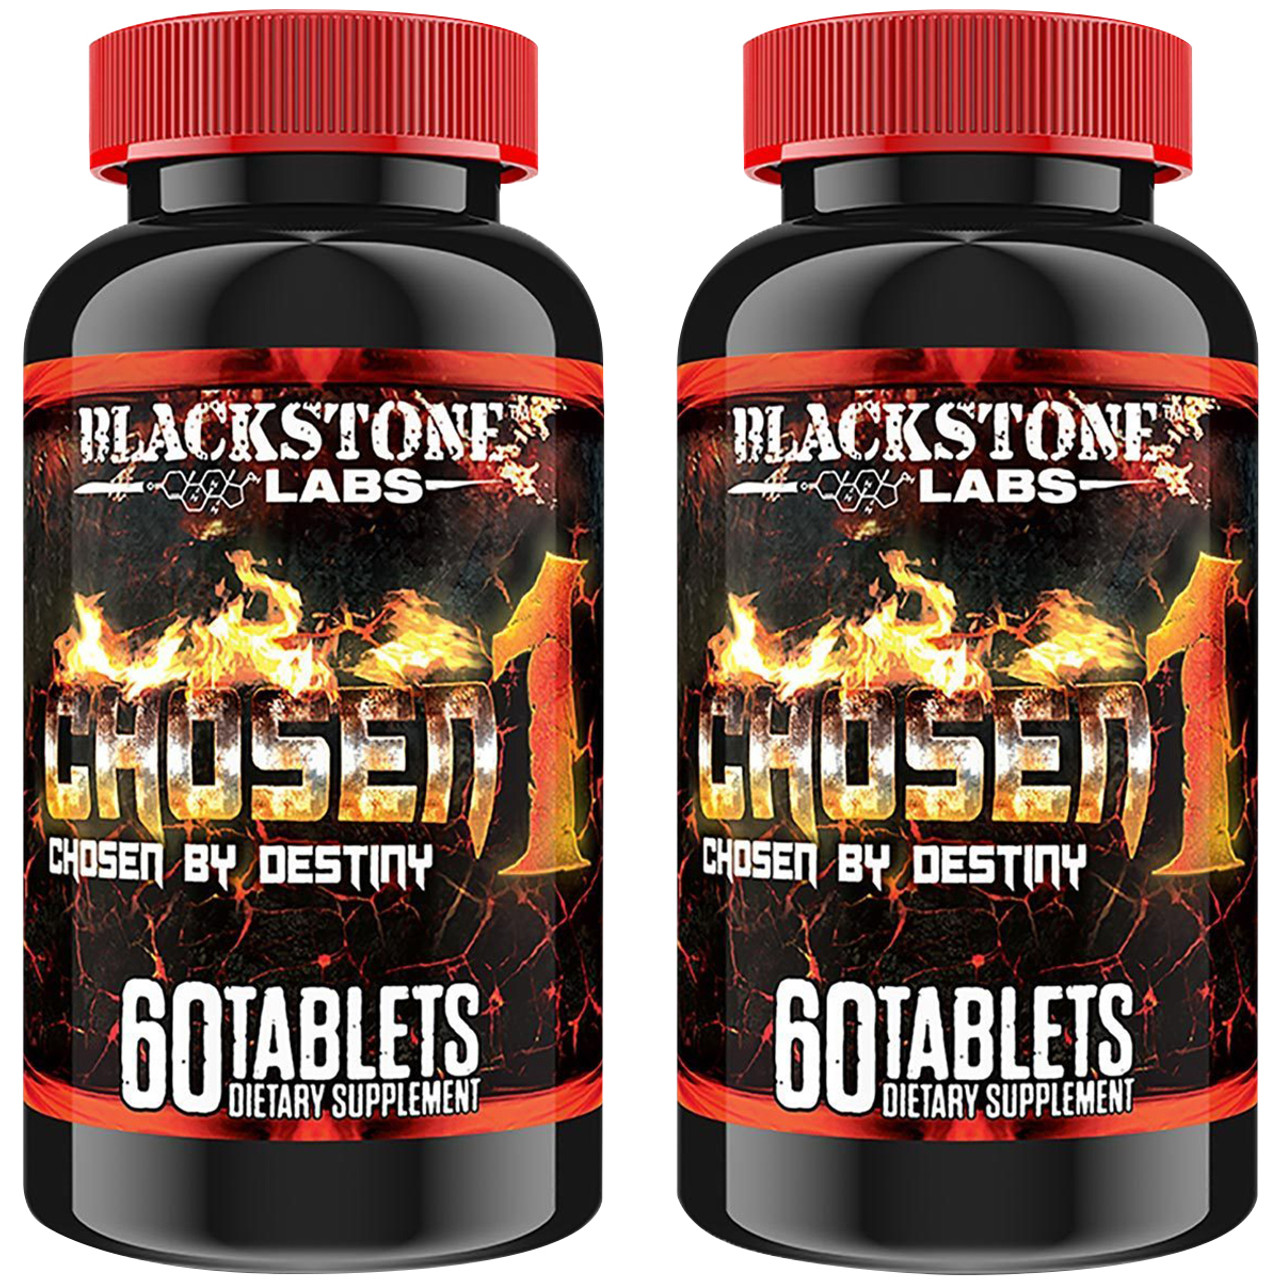 Blackstone Labs Chosen1 Muscle-Building Dietary Supplement - 2 Pack